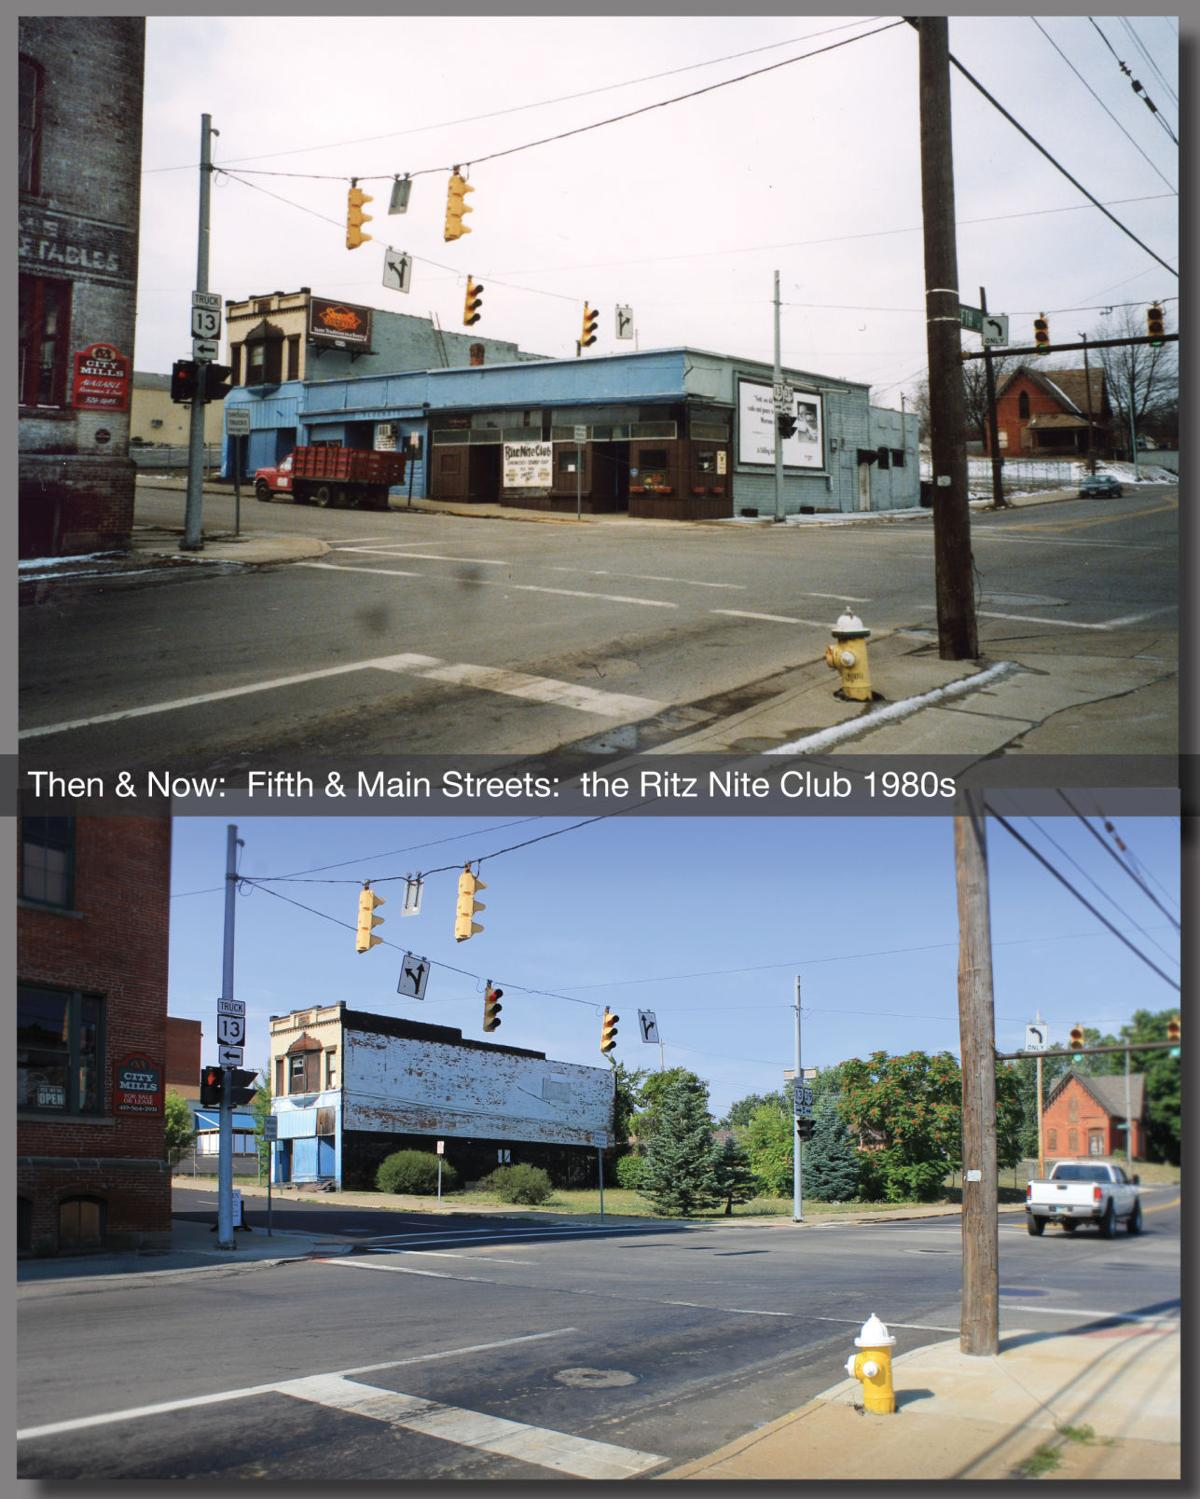 Then & Now: Fifth & Main in the 1980s